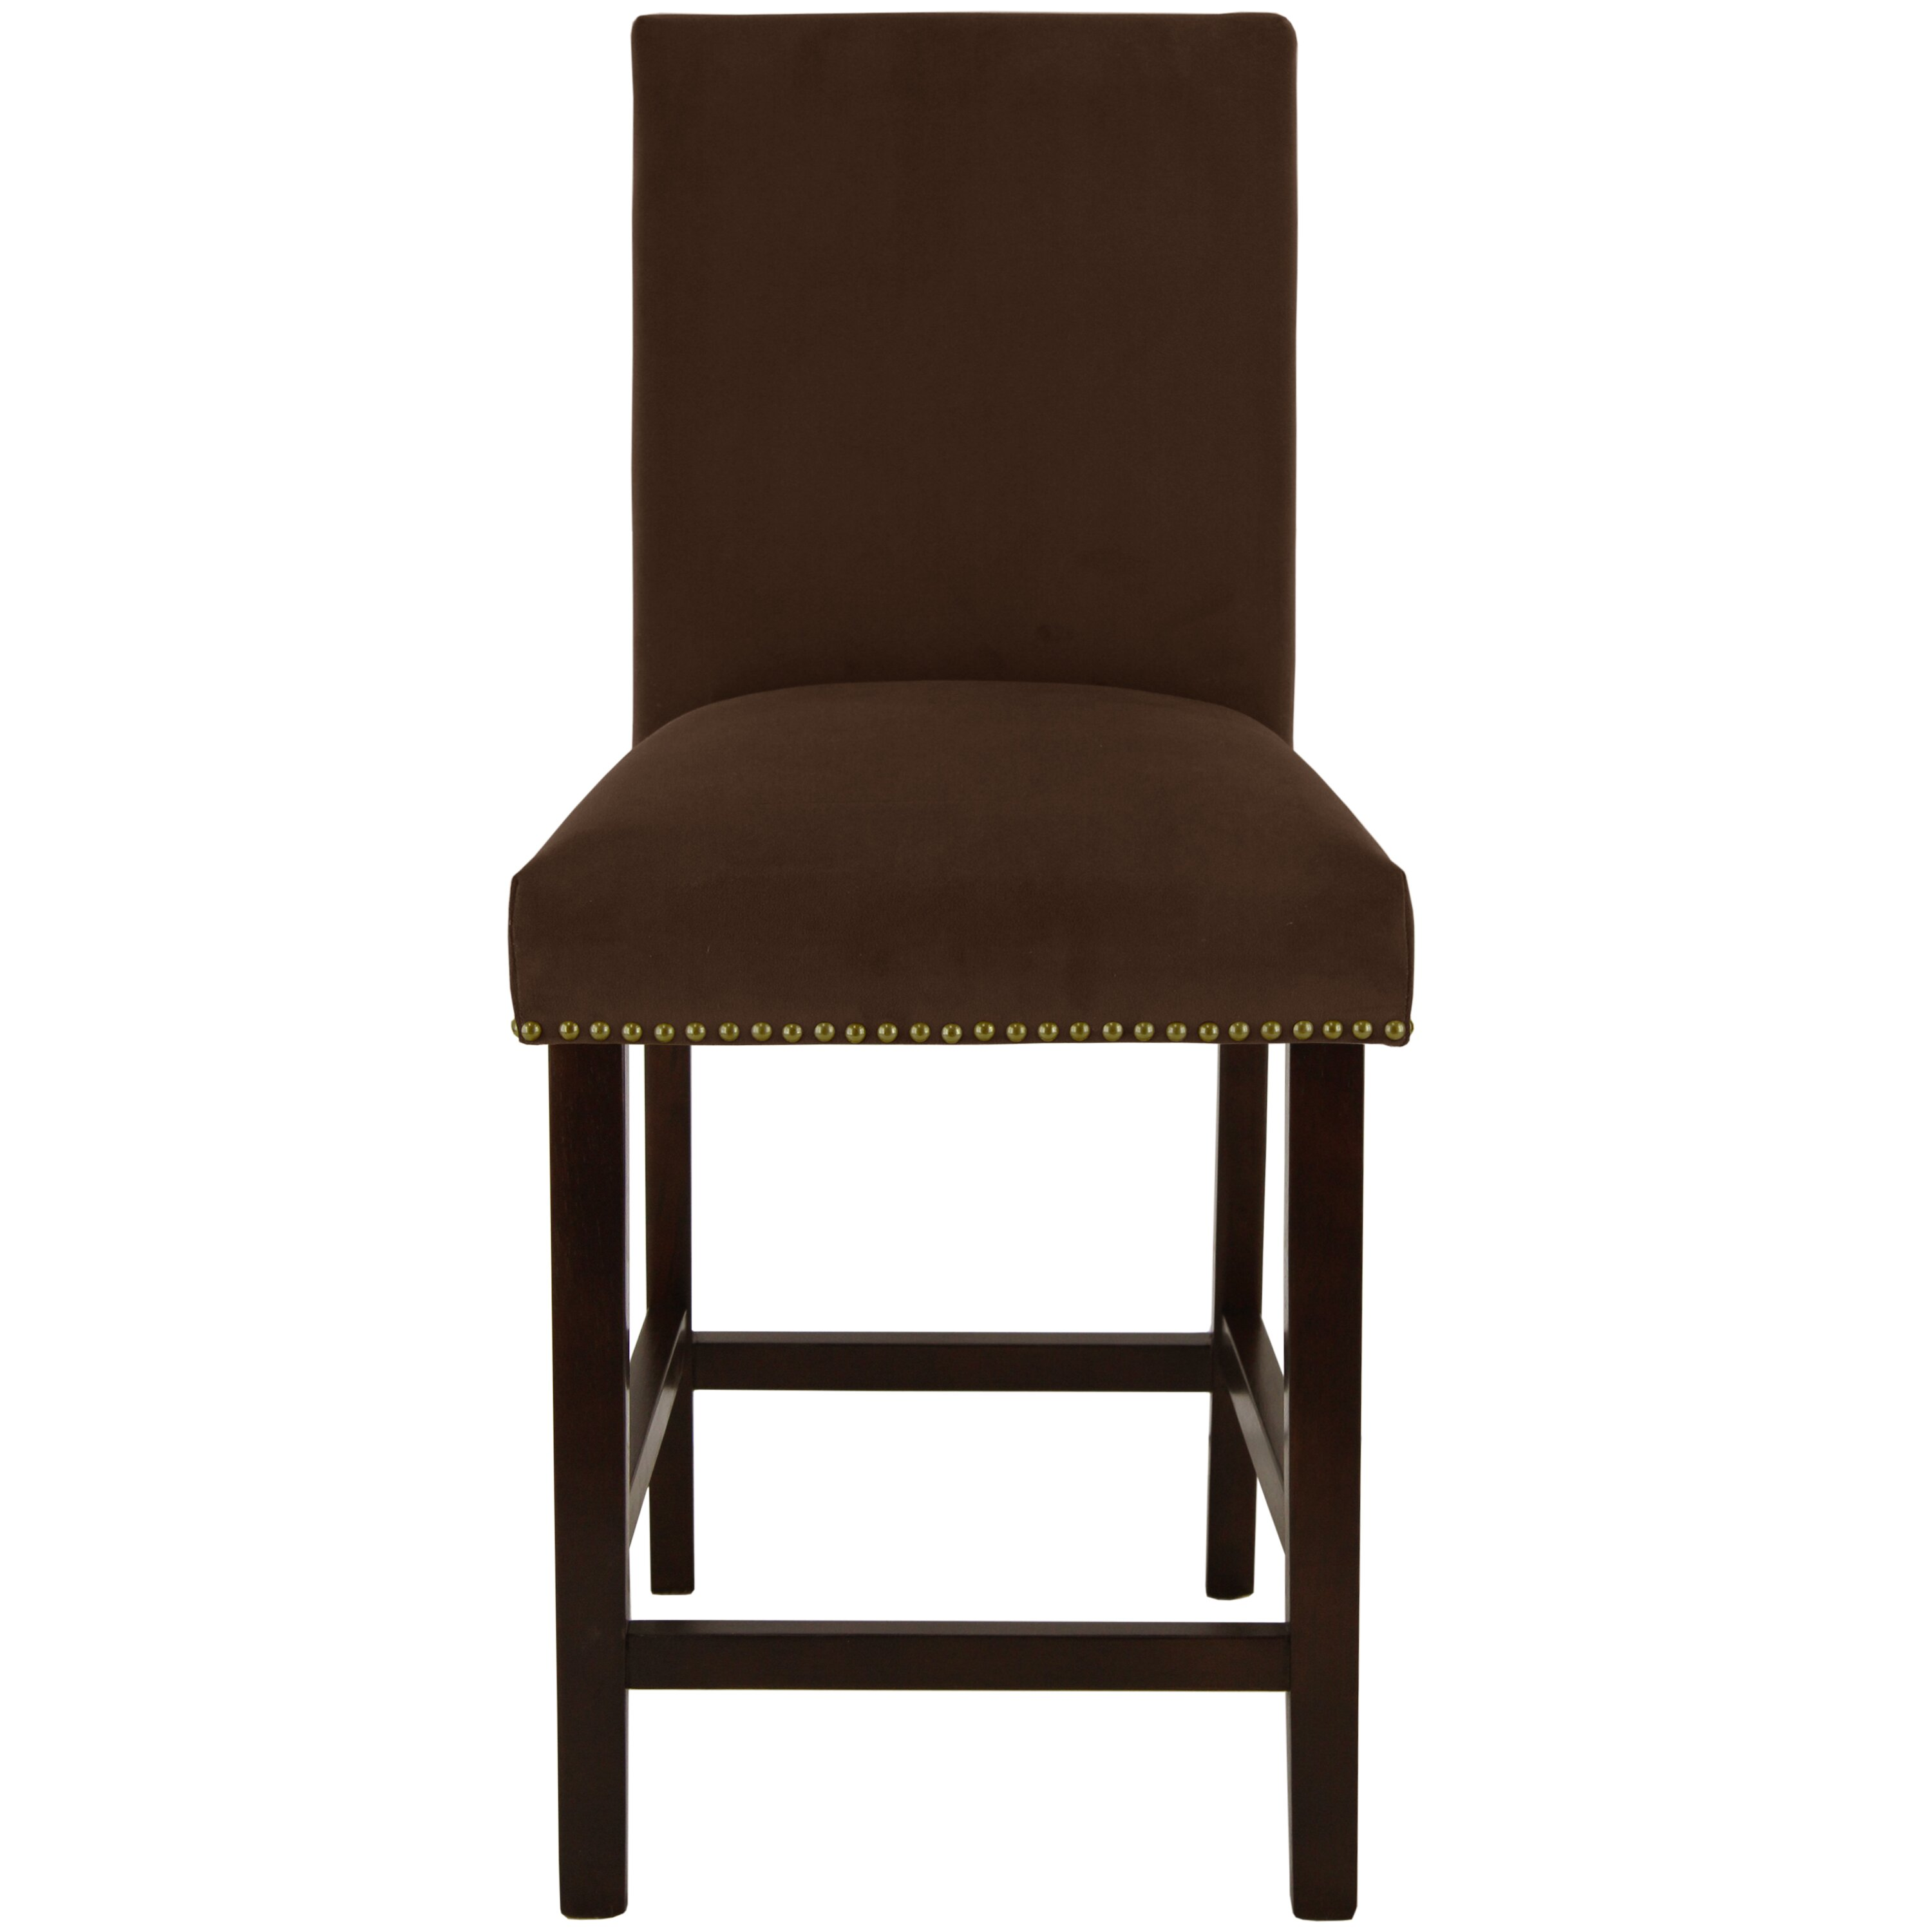 Darby Home Co Rochester 25quot Bar Stool amp Reviews Wayfair : Rochester 25 Bar Stool with Cushion DBHC7974 from www.wayfair.com size 3000 x 3000 jpeg 404kB